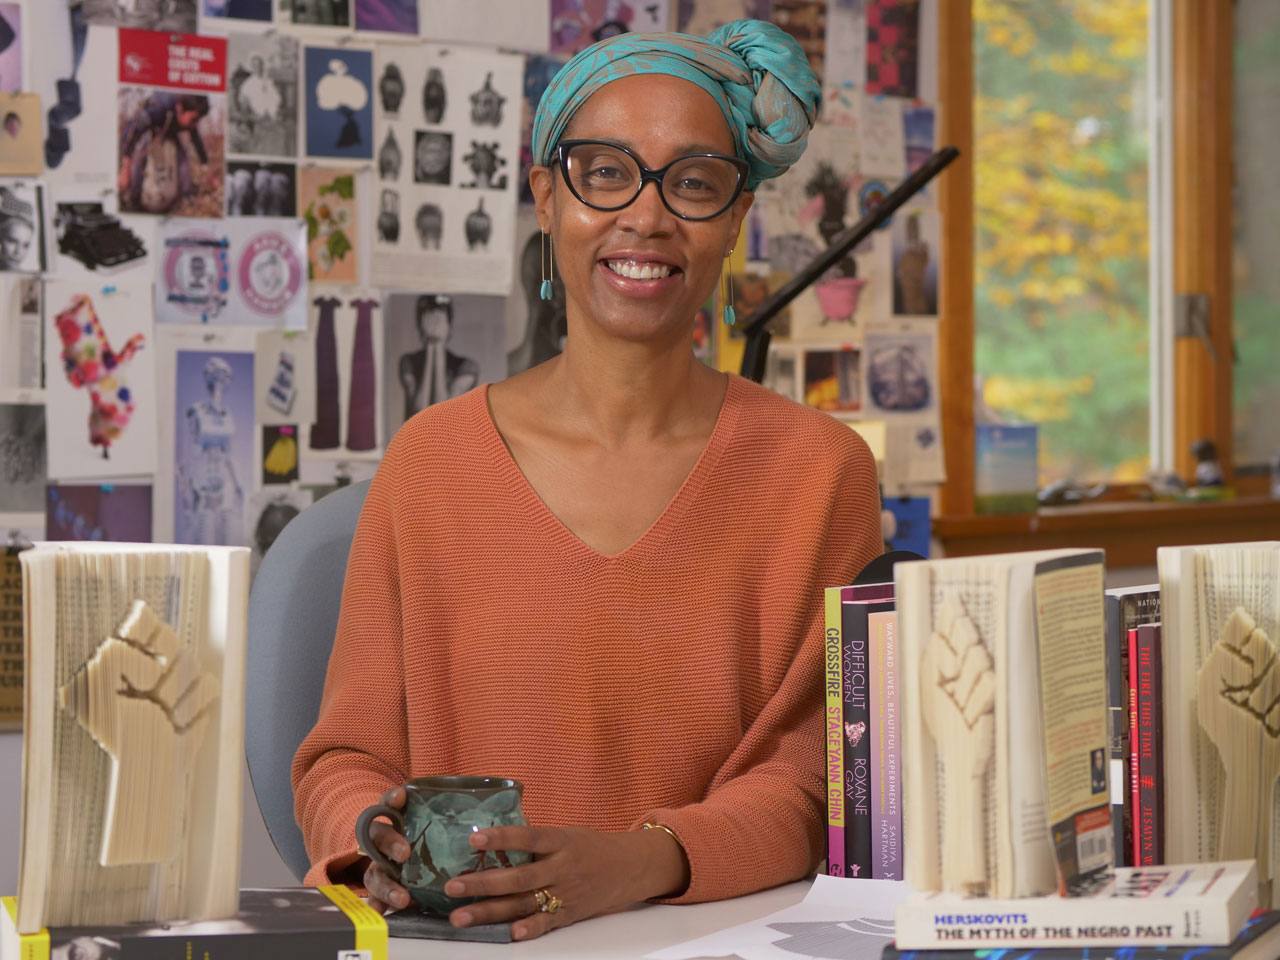 Sonya Clark sits in her art studio with sculpted books next to her